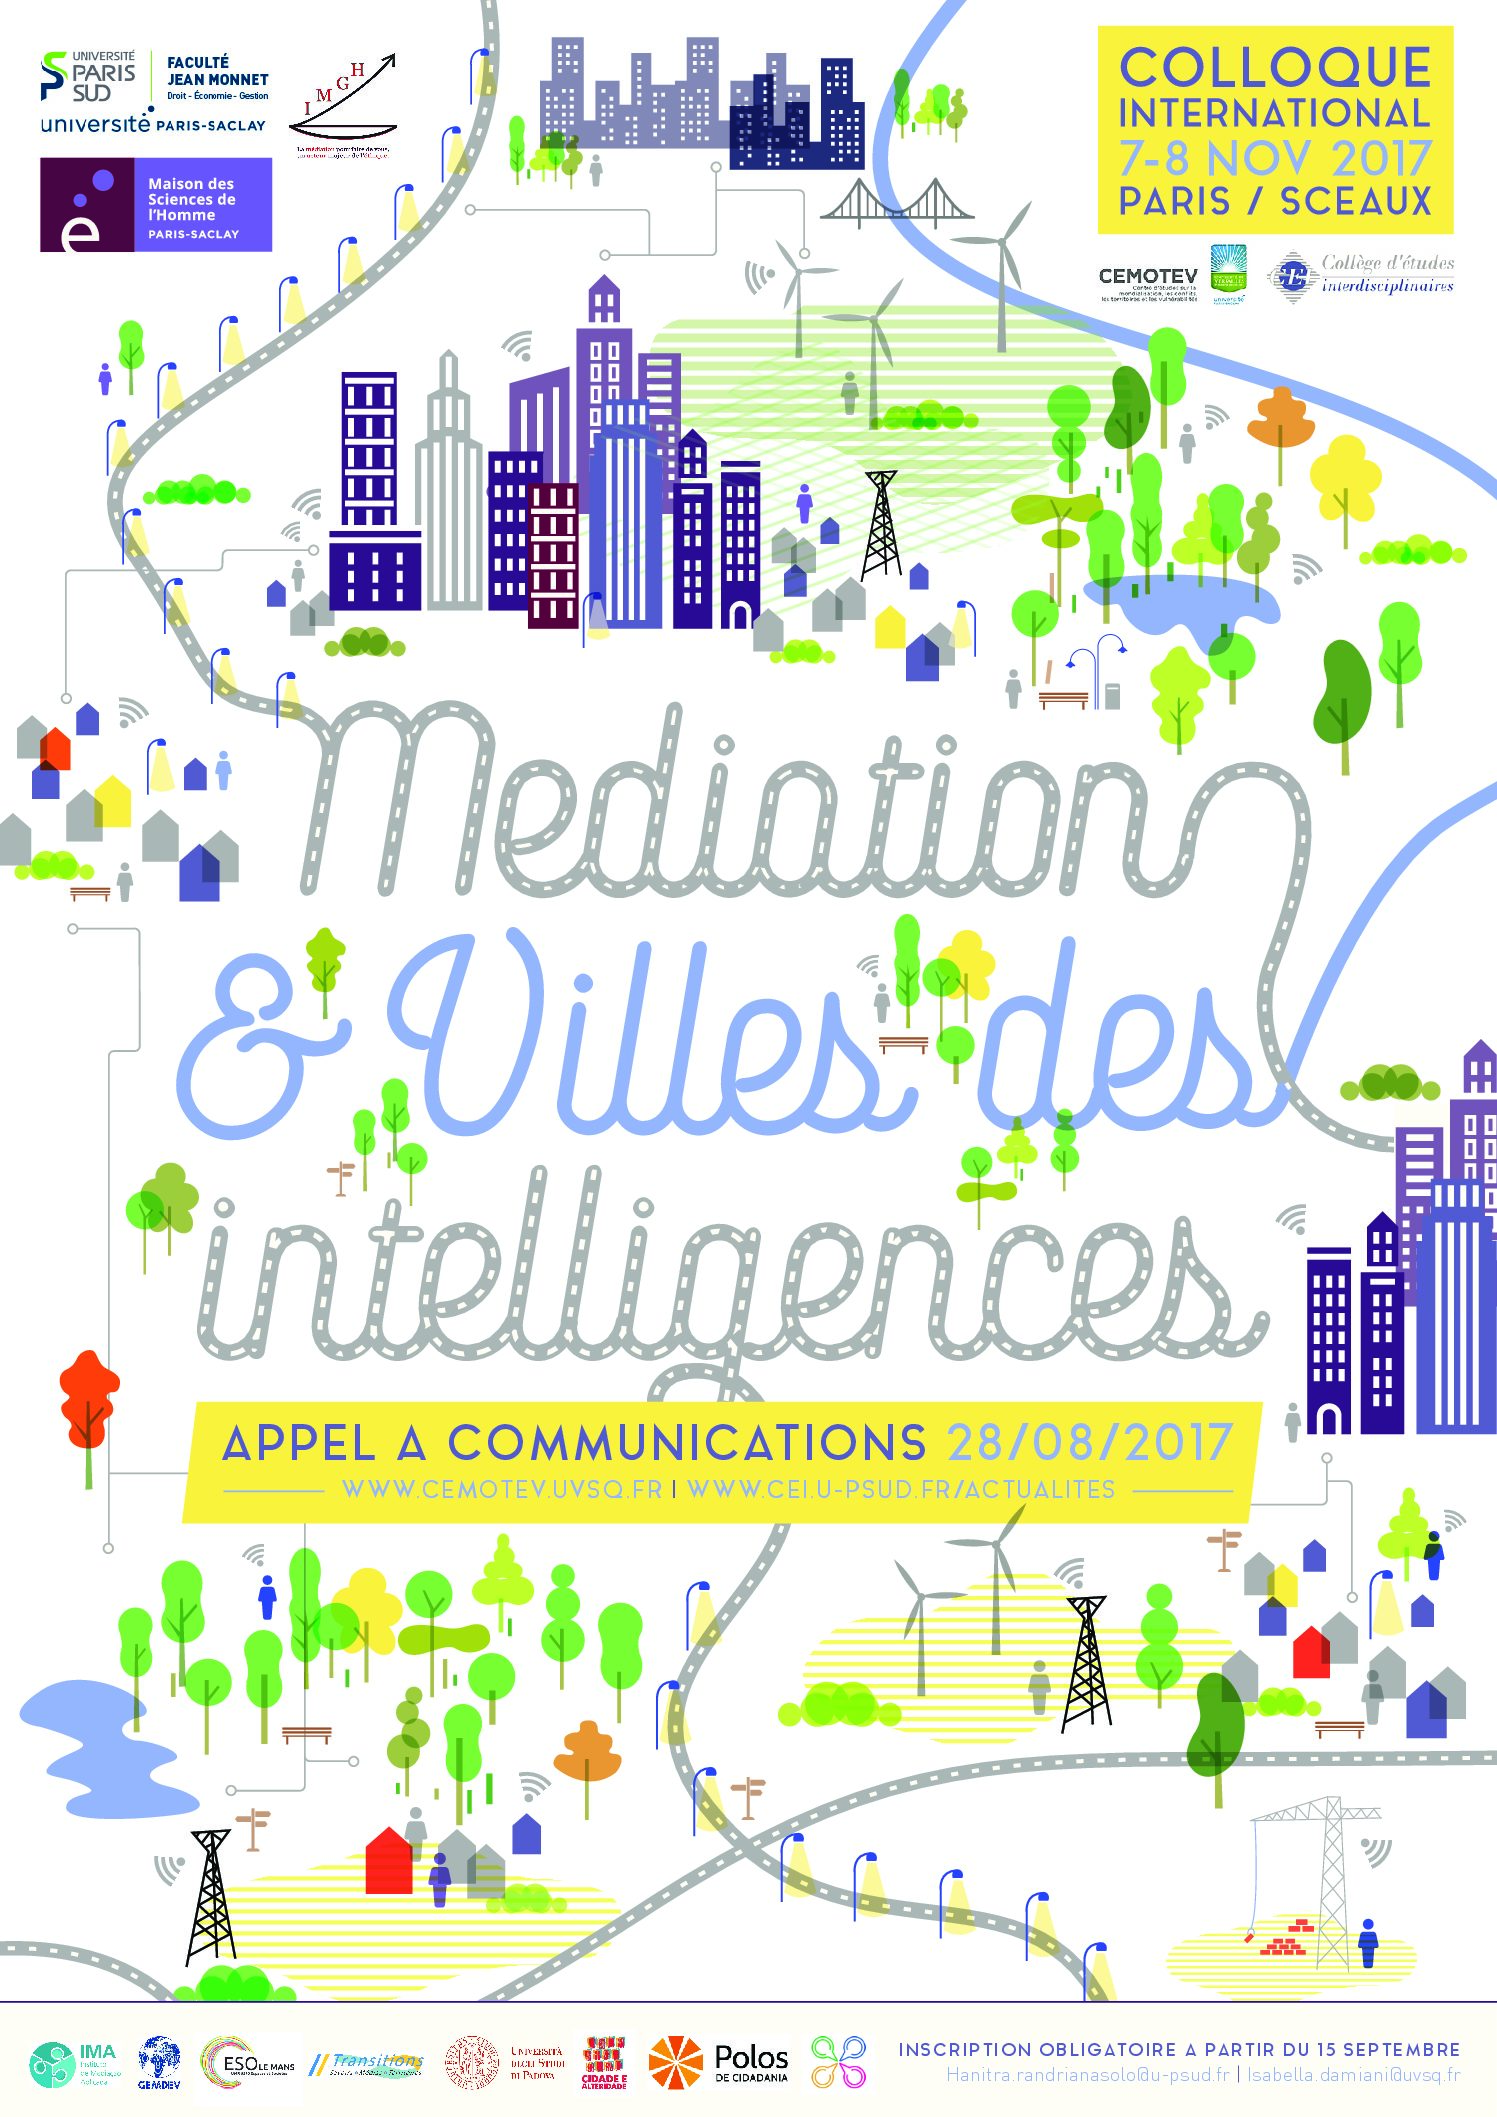 Appel à communications  – Colloque international « Médiation & Villes des intelligences » – 15/09/2017